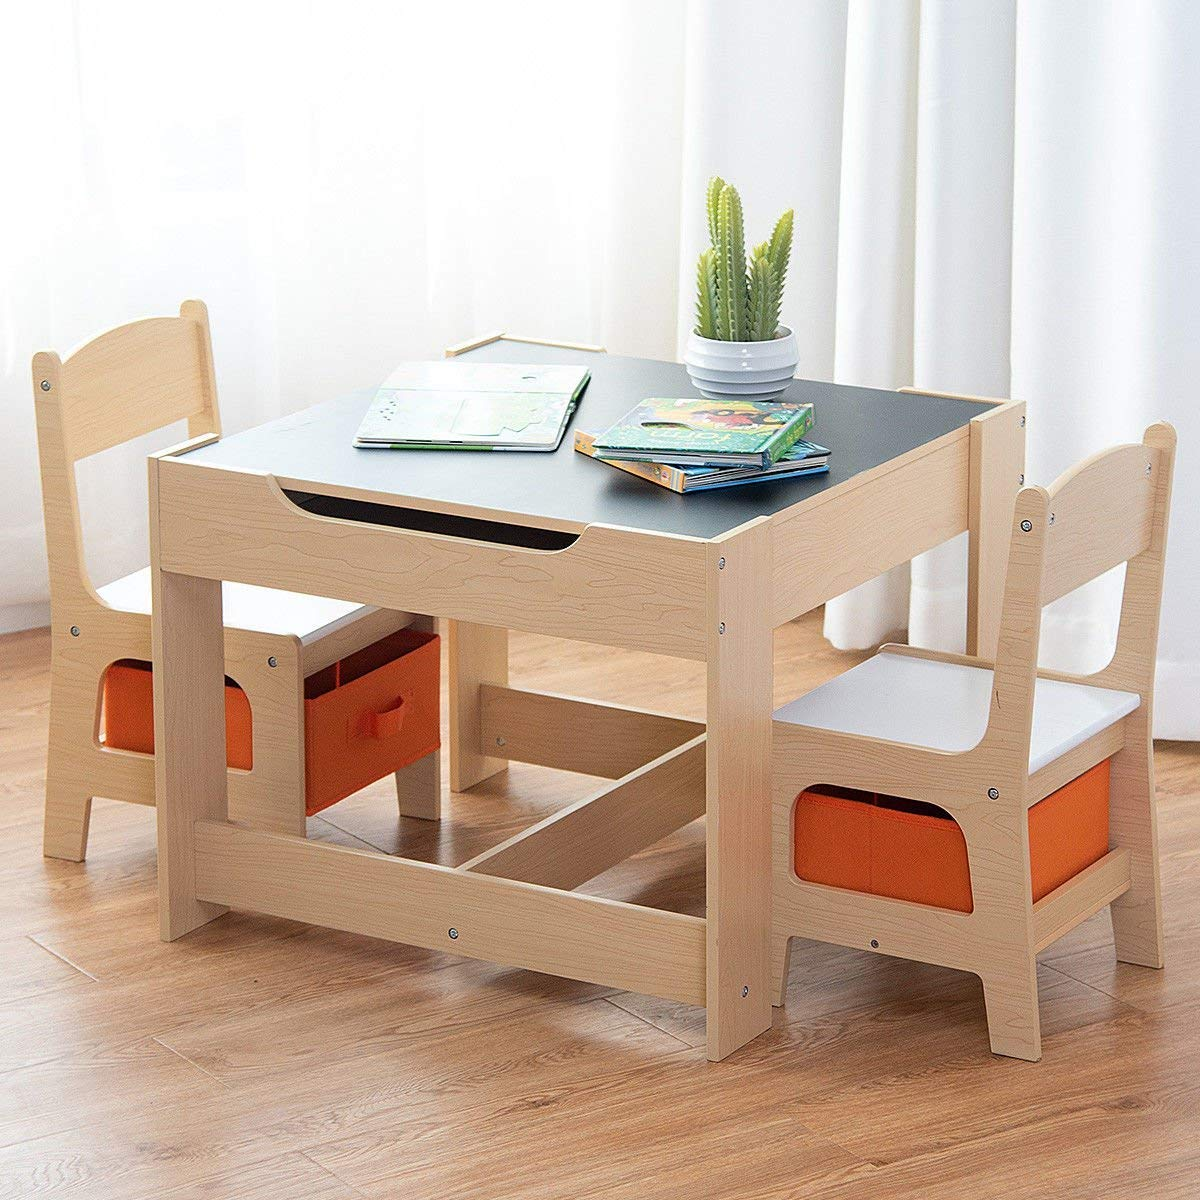 Picture of: Costzon Kids Table And 2 Chairs Set 3 In 1 Wooden Table Furniture For Toddlers Drawing Reading Train Art Playroom Activity Table Desk Sets Convertible Set With Storage Space